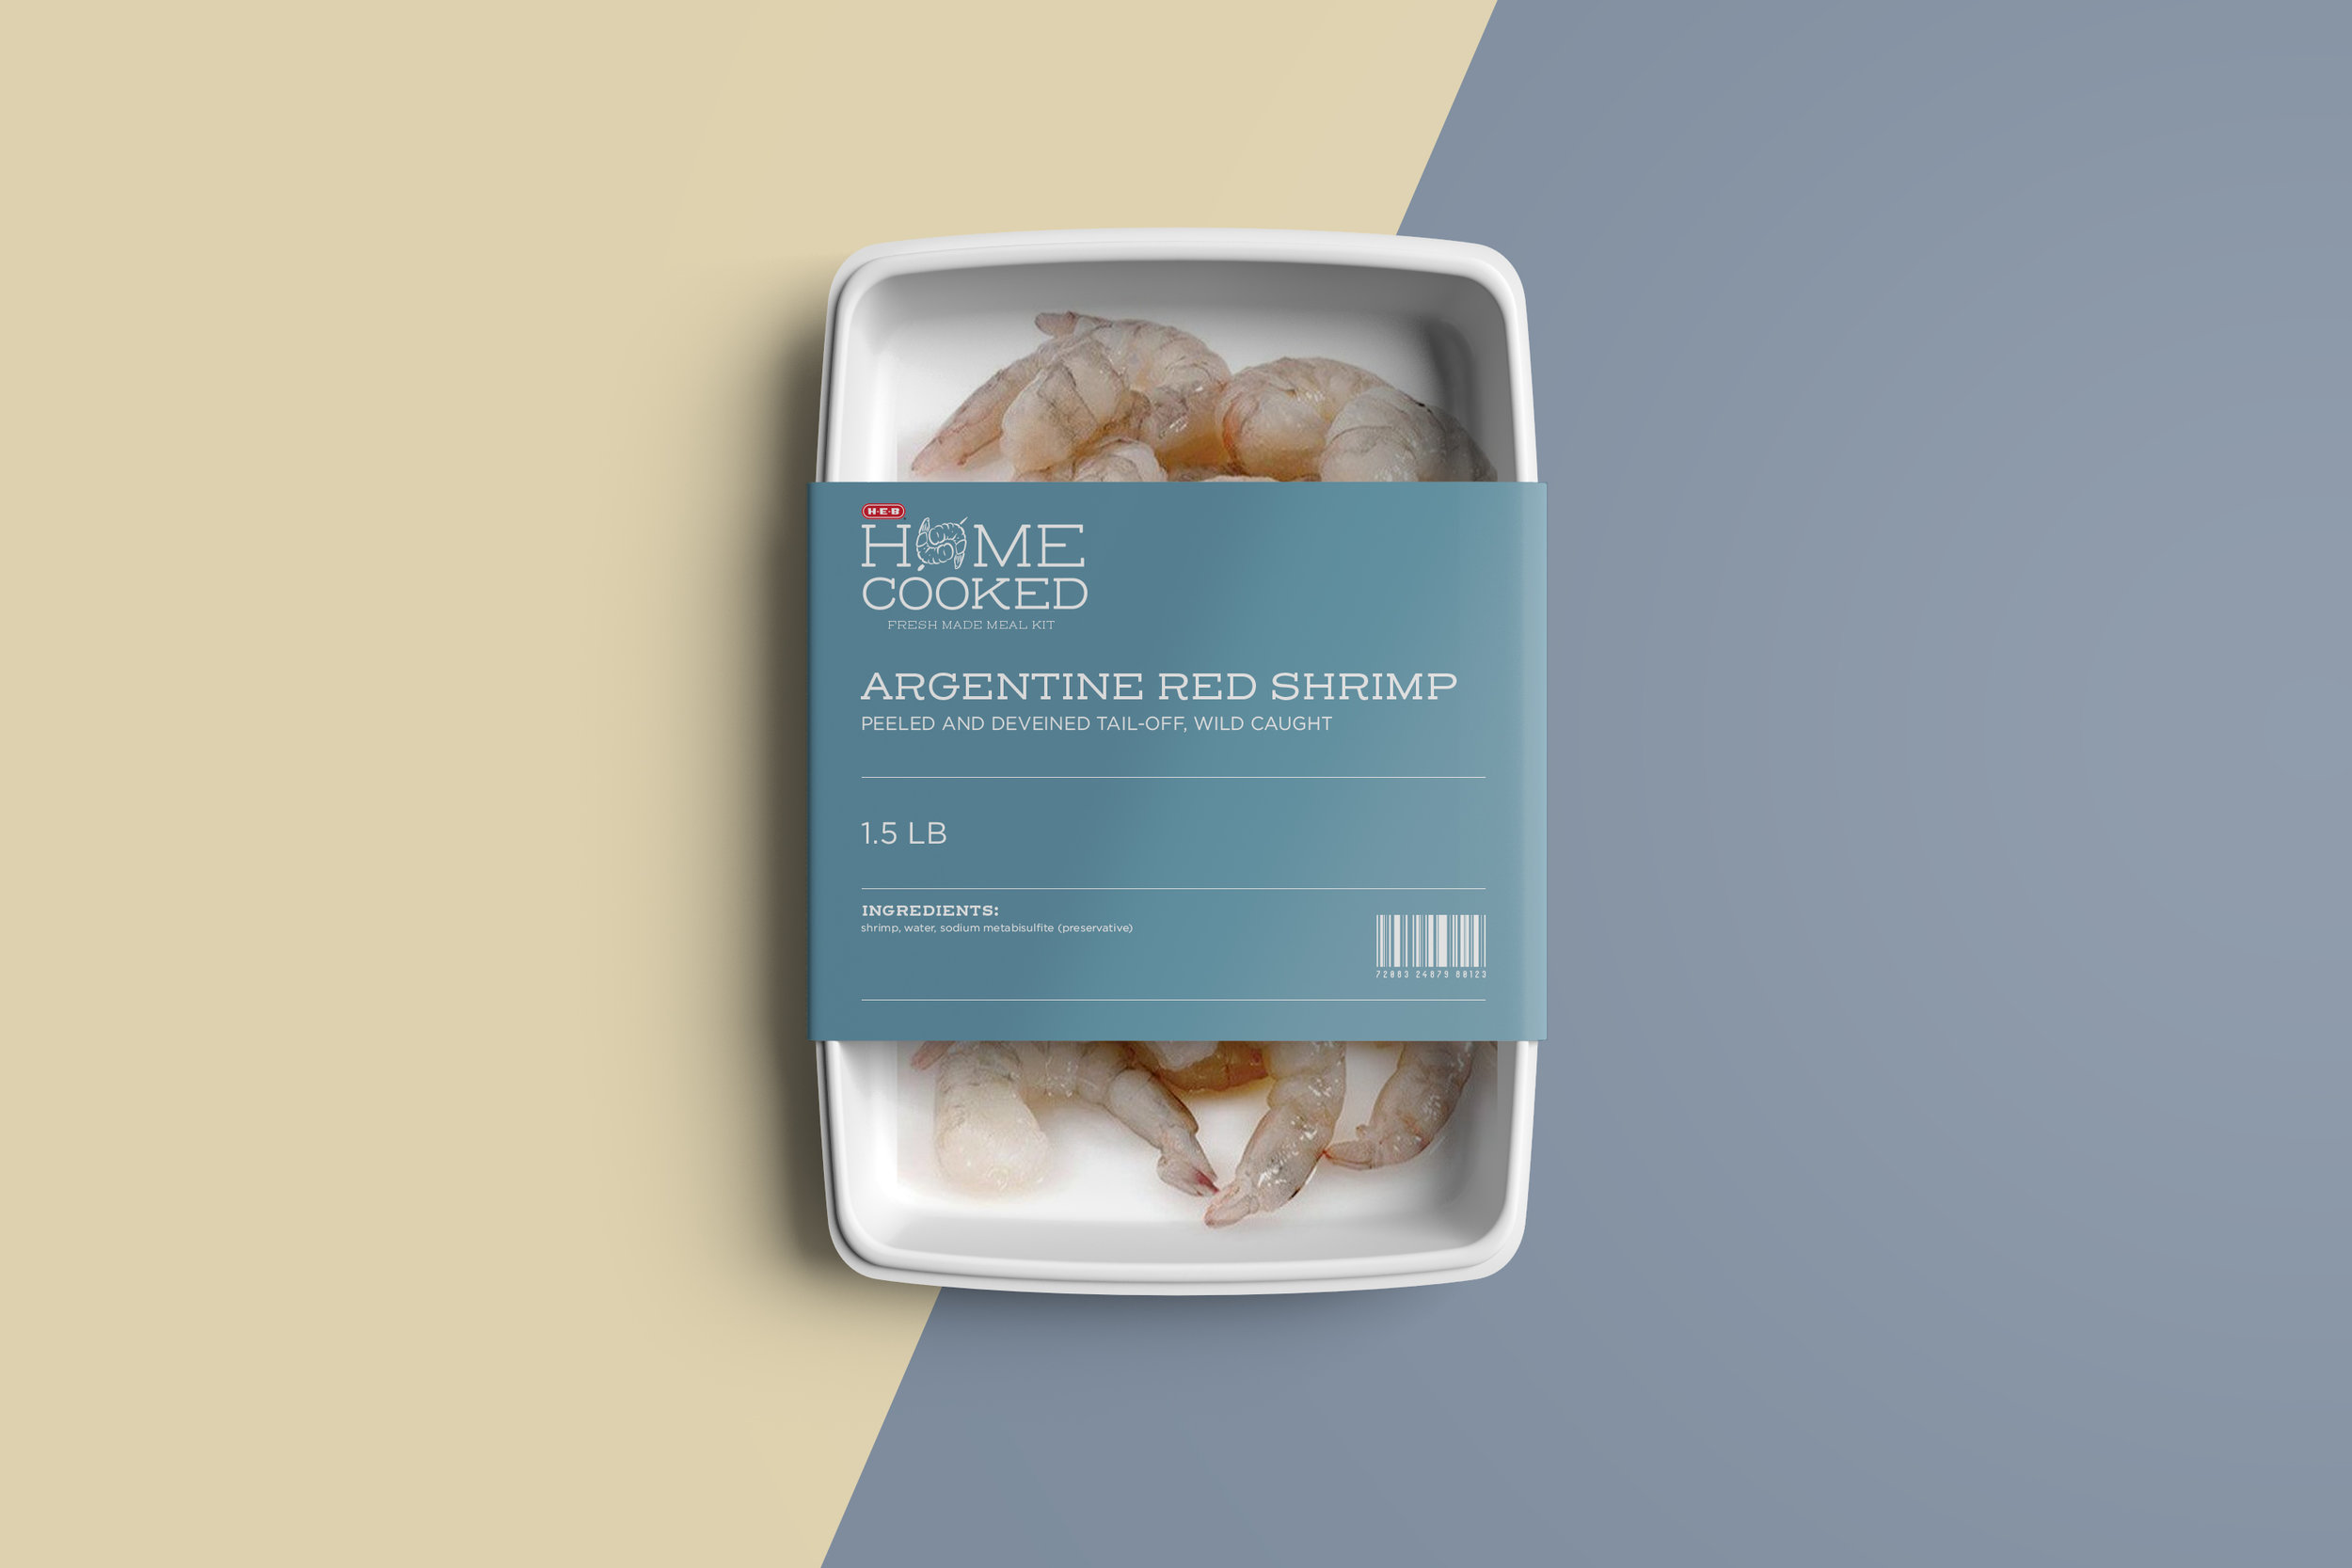 Packaging for meats and protein inside the meal kits.